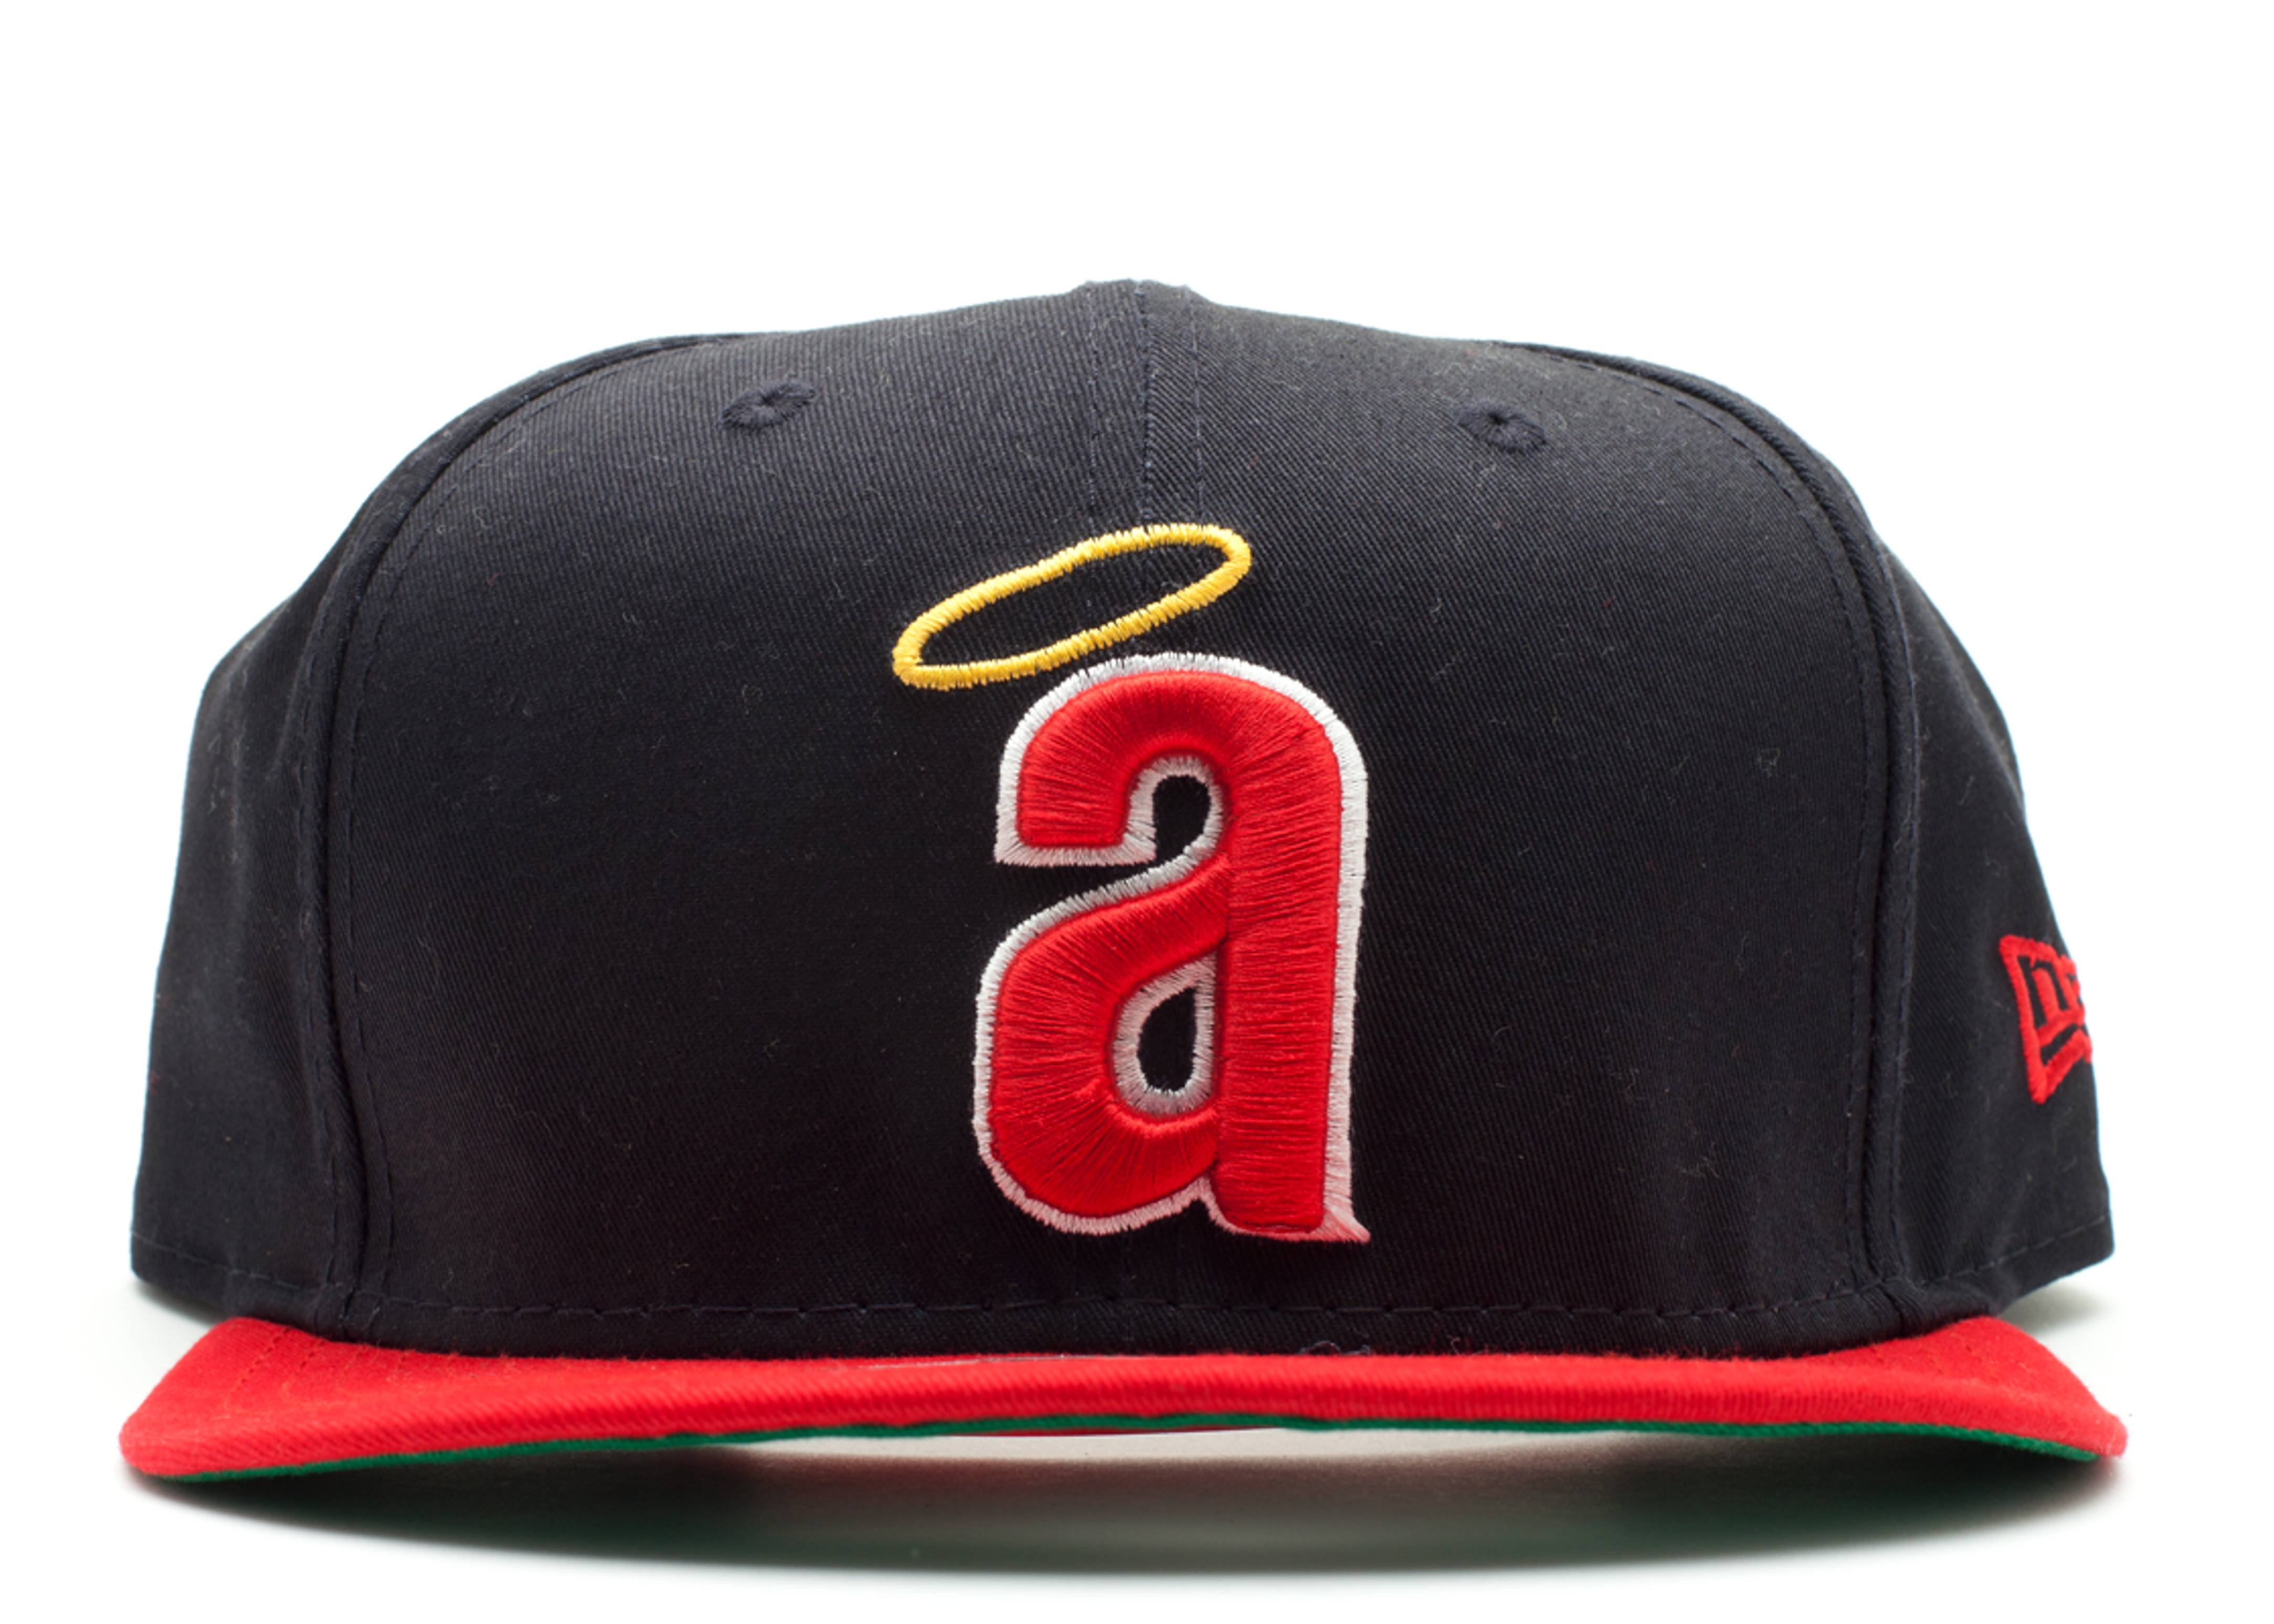 anaheim angels snap-back